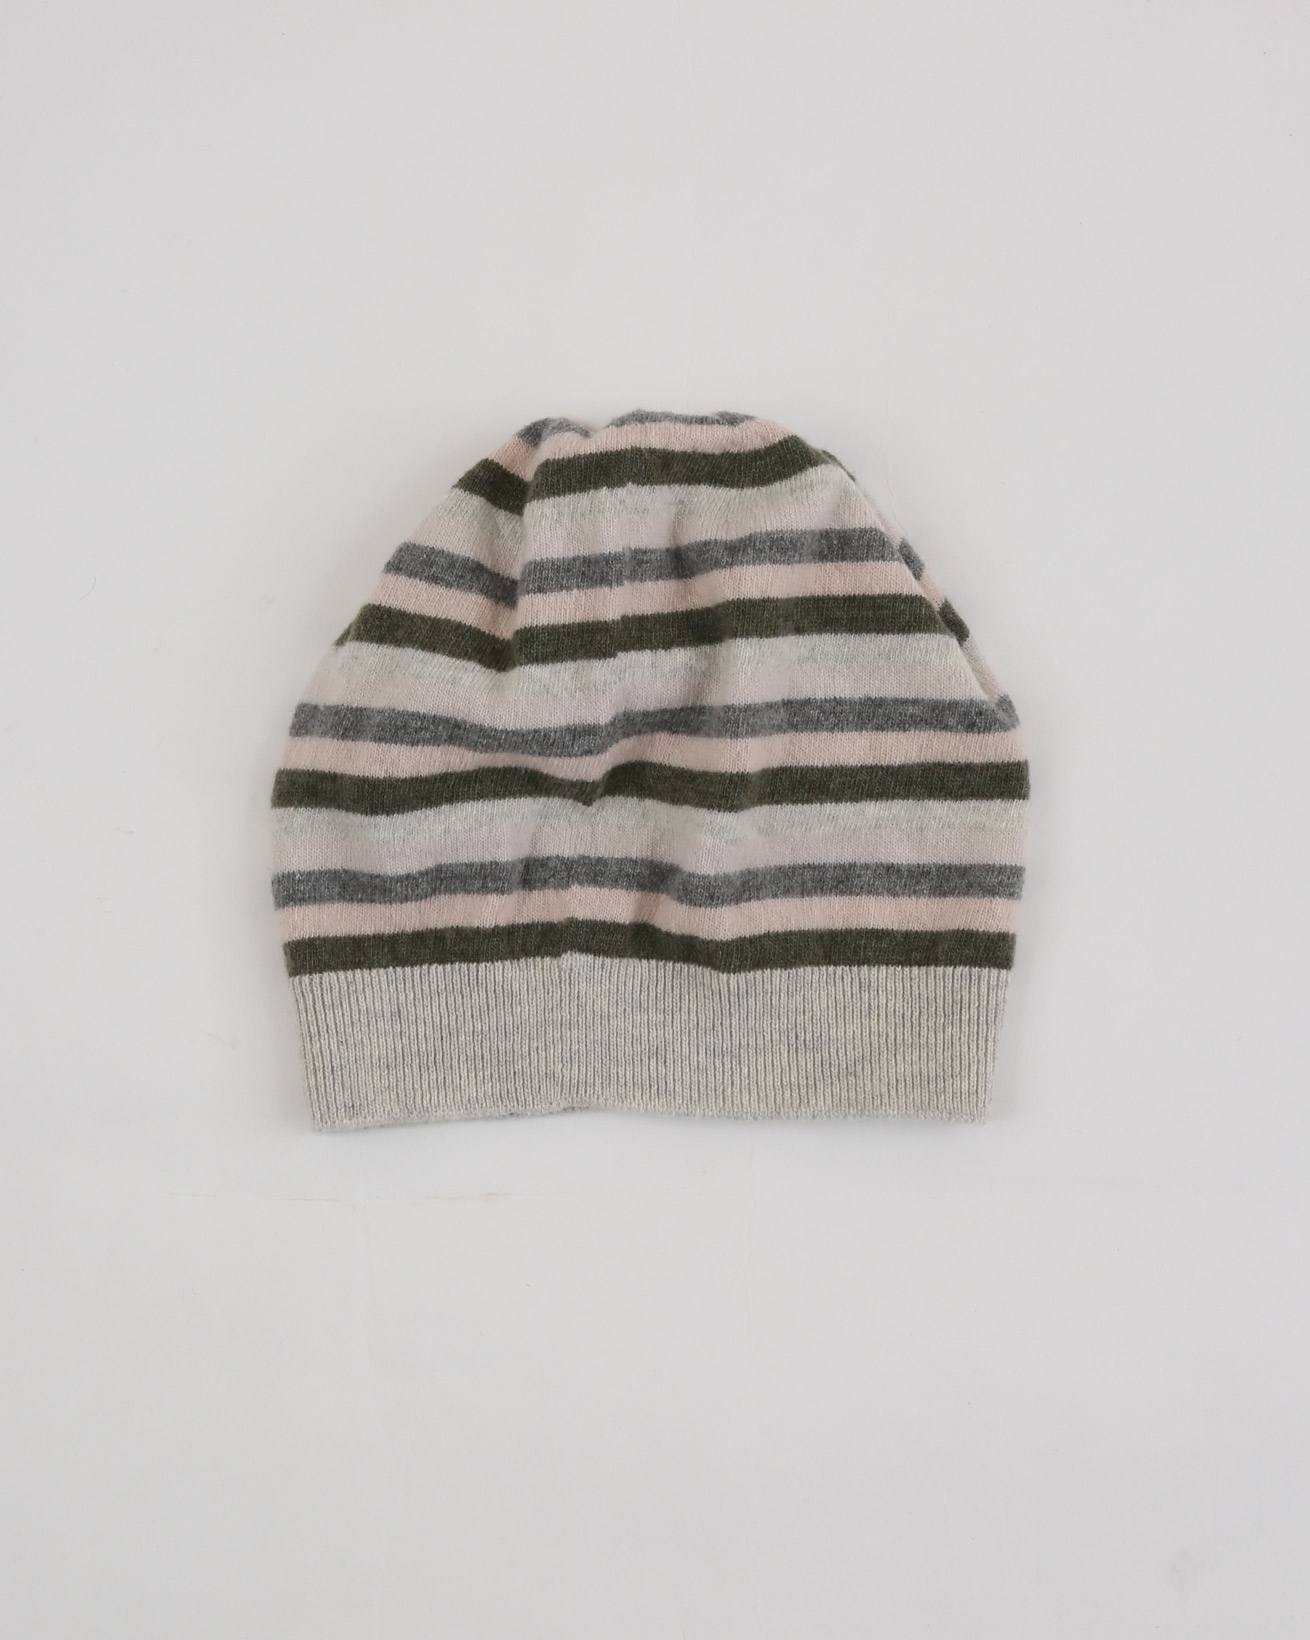 Lambswool Striped Hat - One Size - Olive/Peony Stripe - 1881